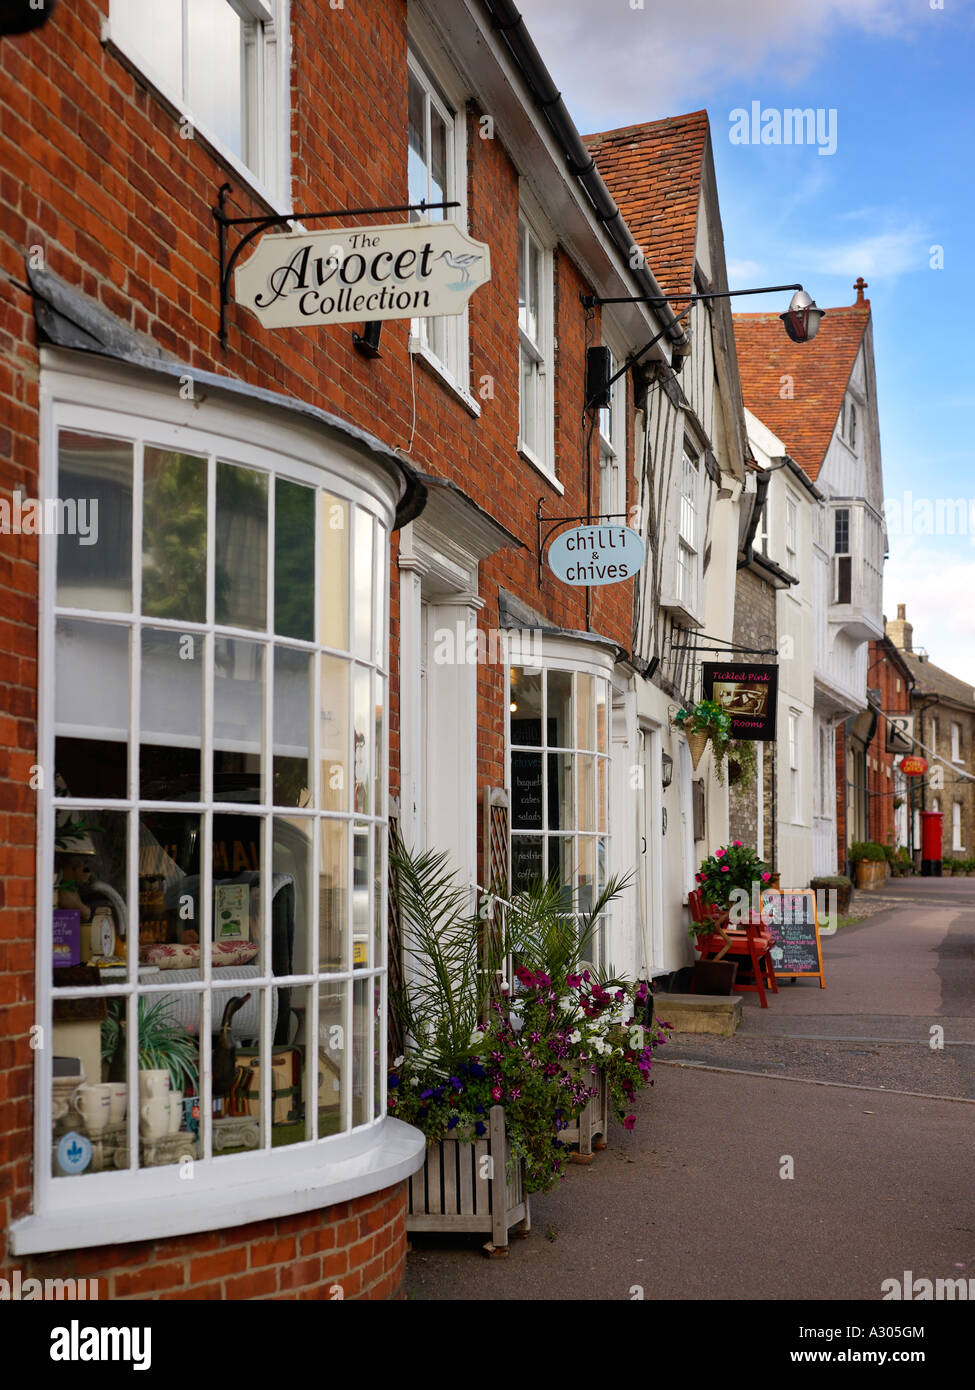 shops and refreshment in Lavenham Perspective corrected - Stock Image